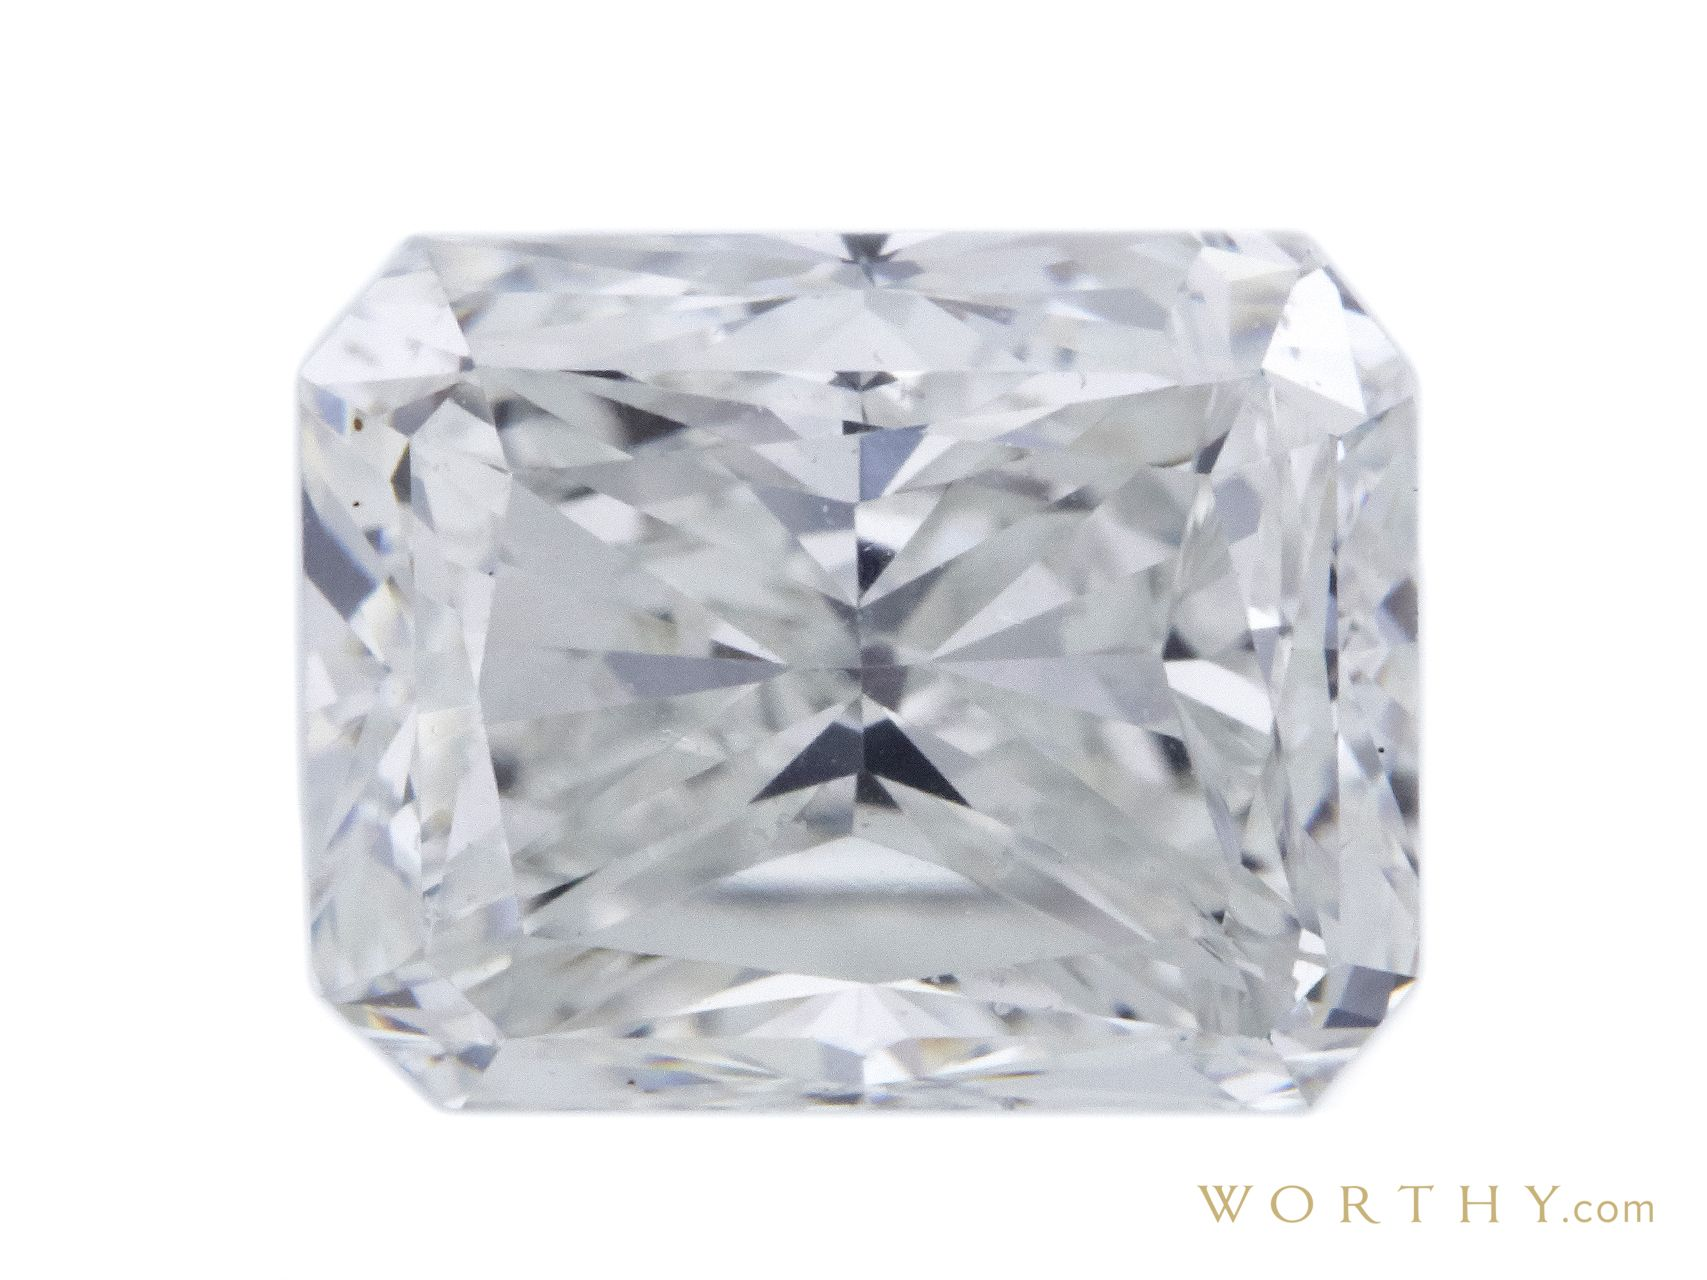 GIA 1.20 CT Radiant Cut Bridal Set Ring Sold at Auction for $2,719